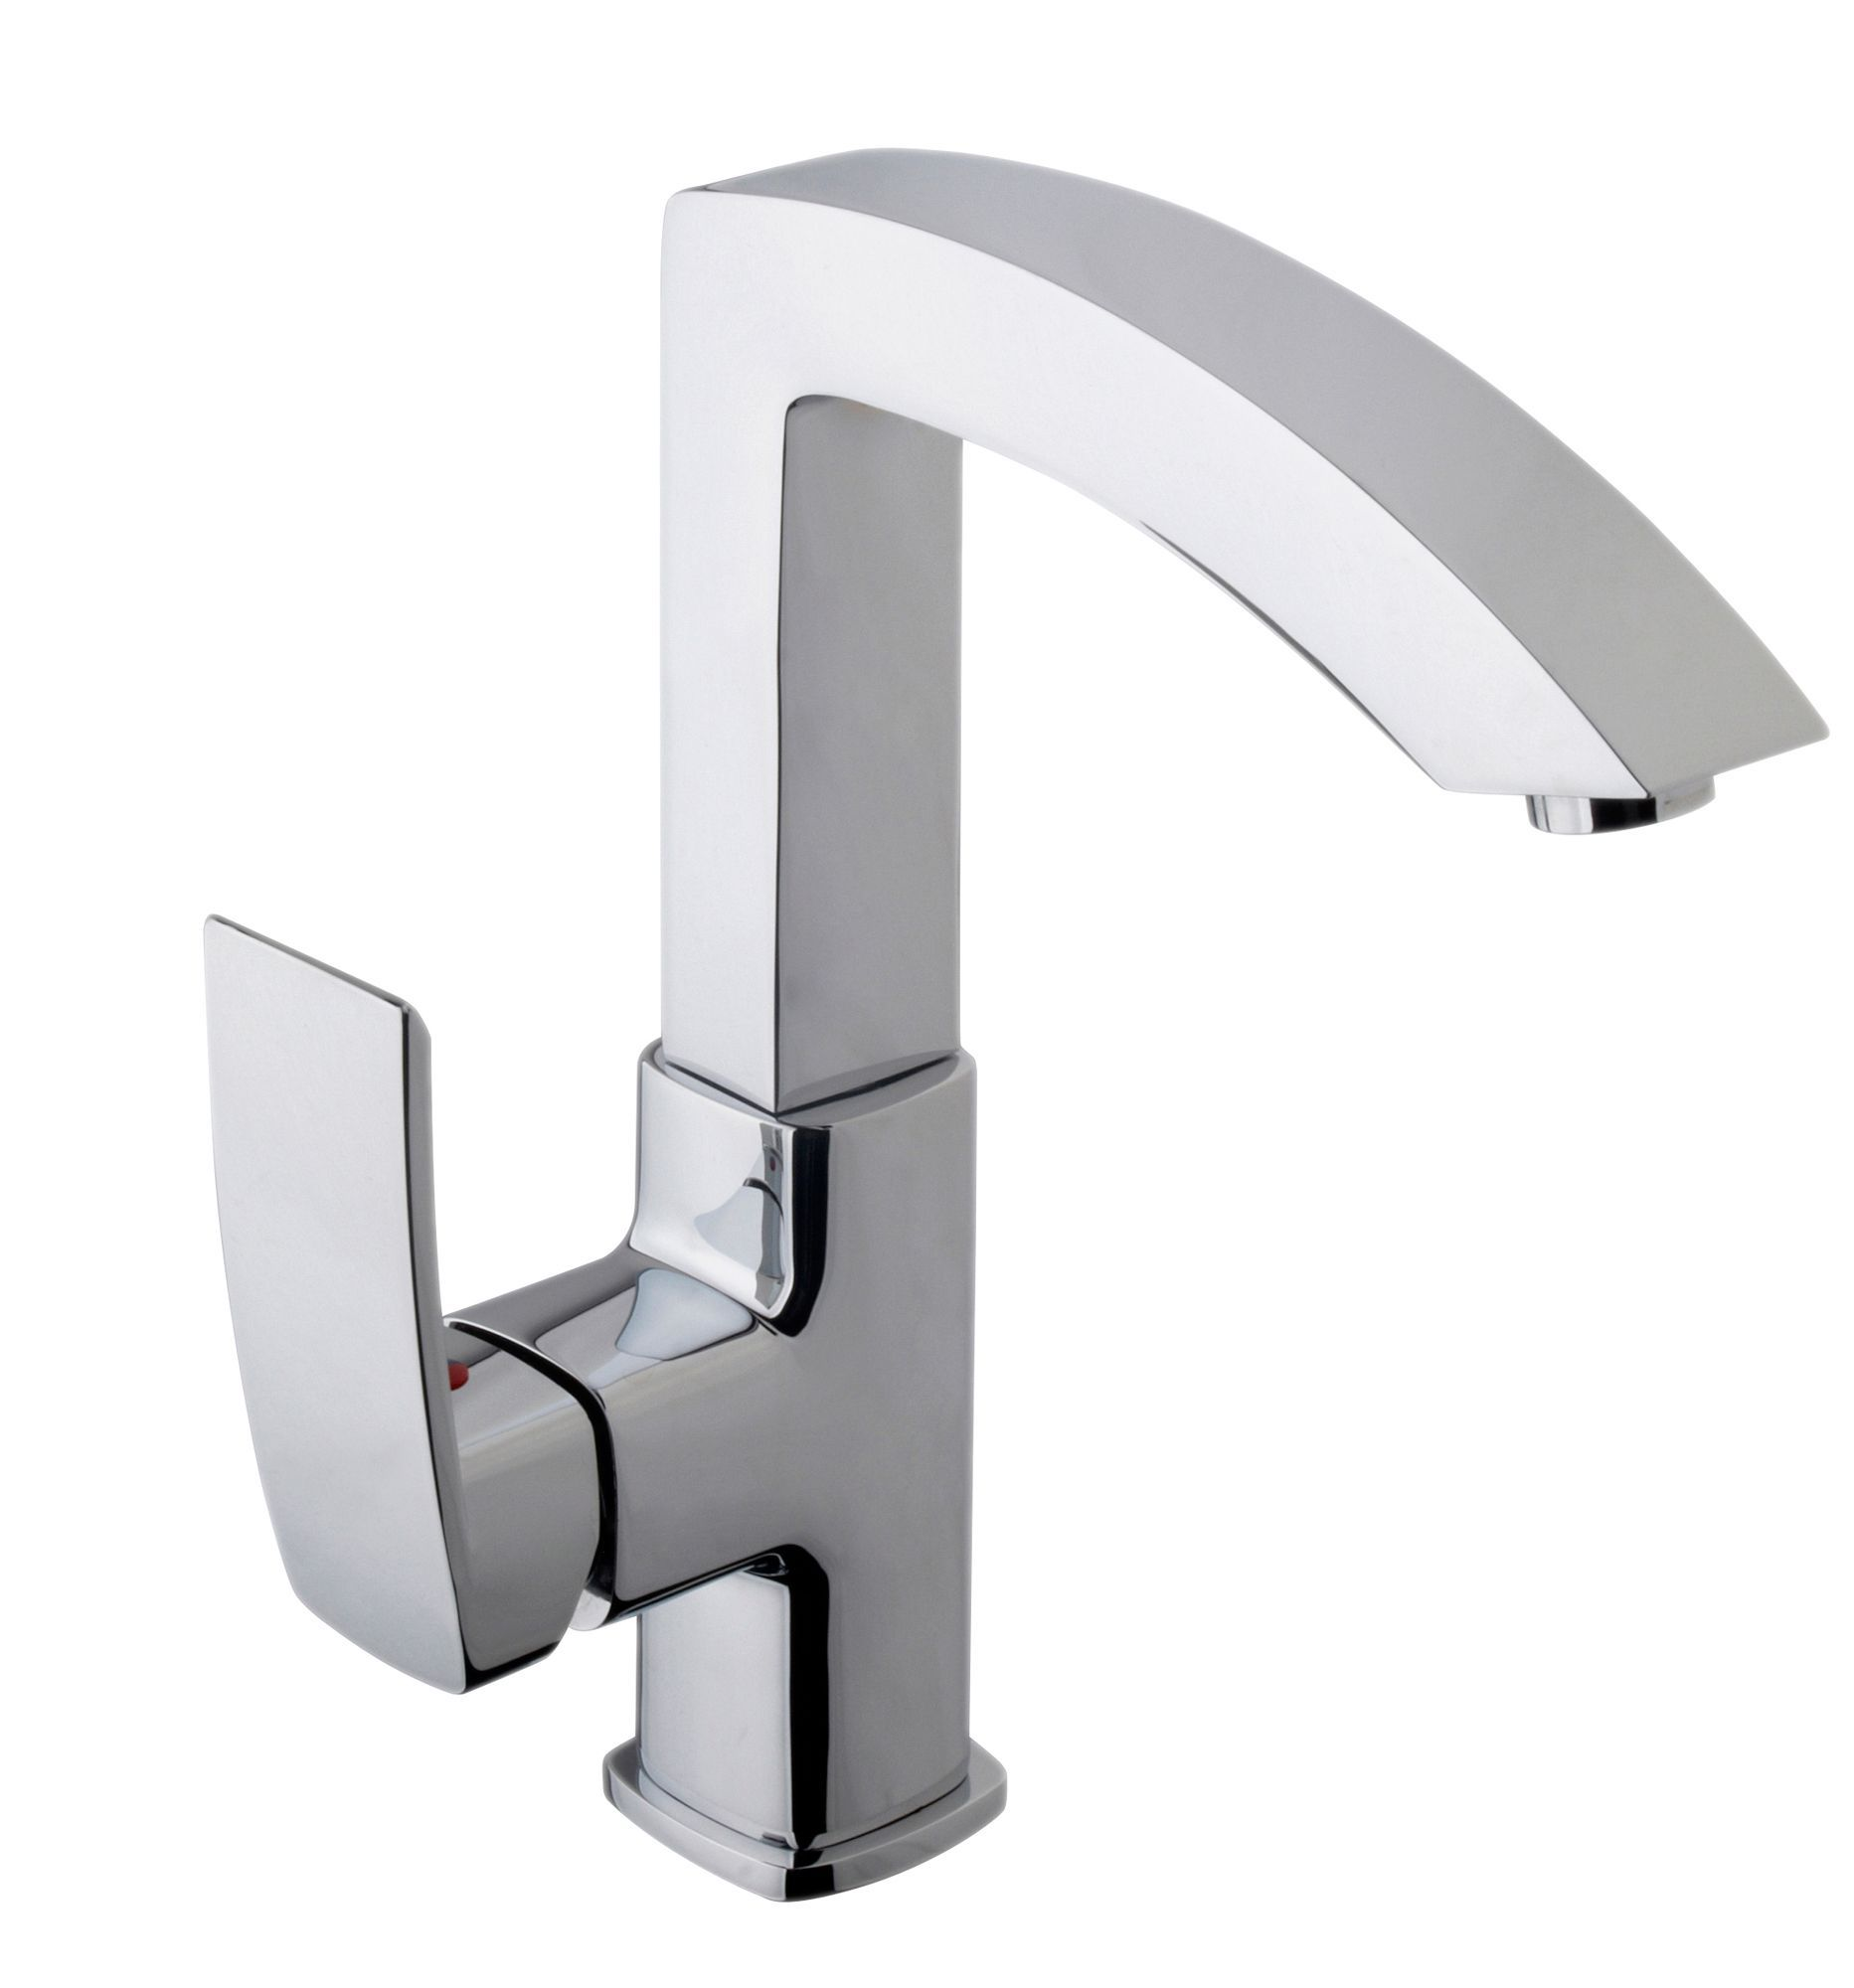 Cooke And Lewis Kitchen Sinks Cooke lewis ishikari chrome effect lever tap departments diy cooke lewis ishikari chrome effect lever tap departments diy at bq workwithnaturefo